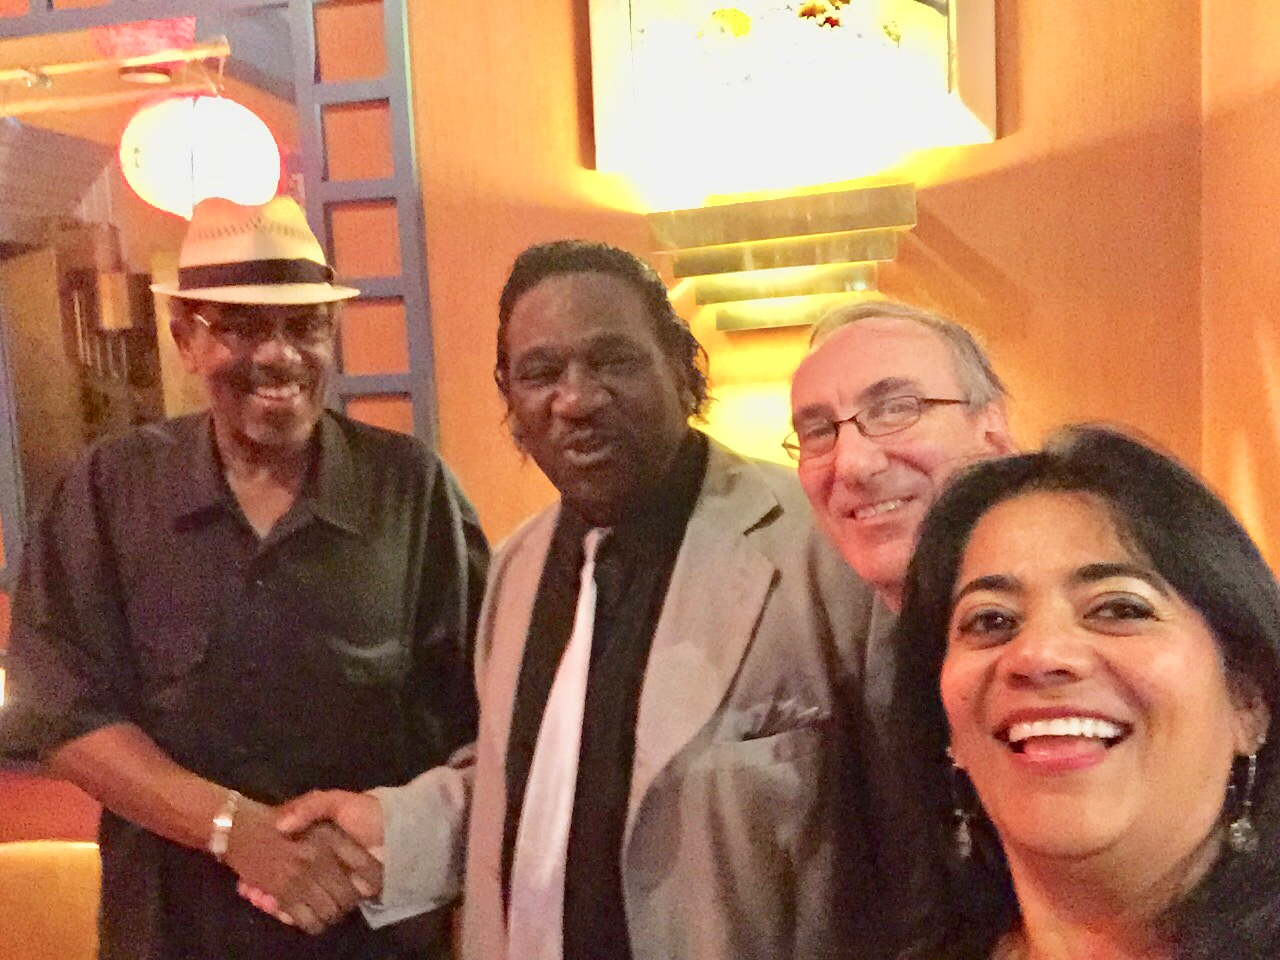 Professor Harp and Mud Morganfield (essentially, Muddy Waters, Jr., Muddy's eldest son) with Alex and Lilian Dina.